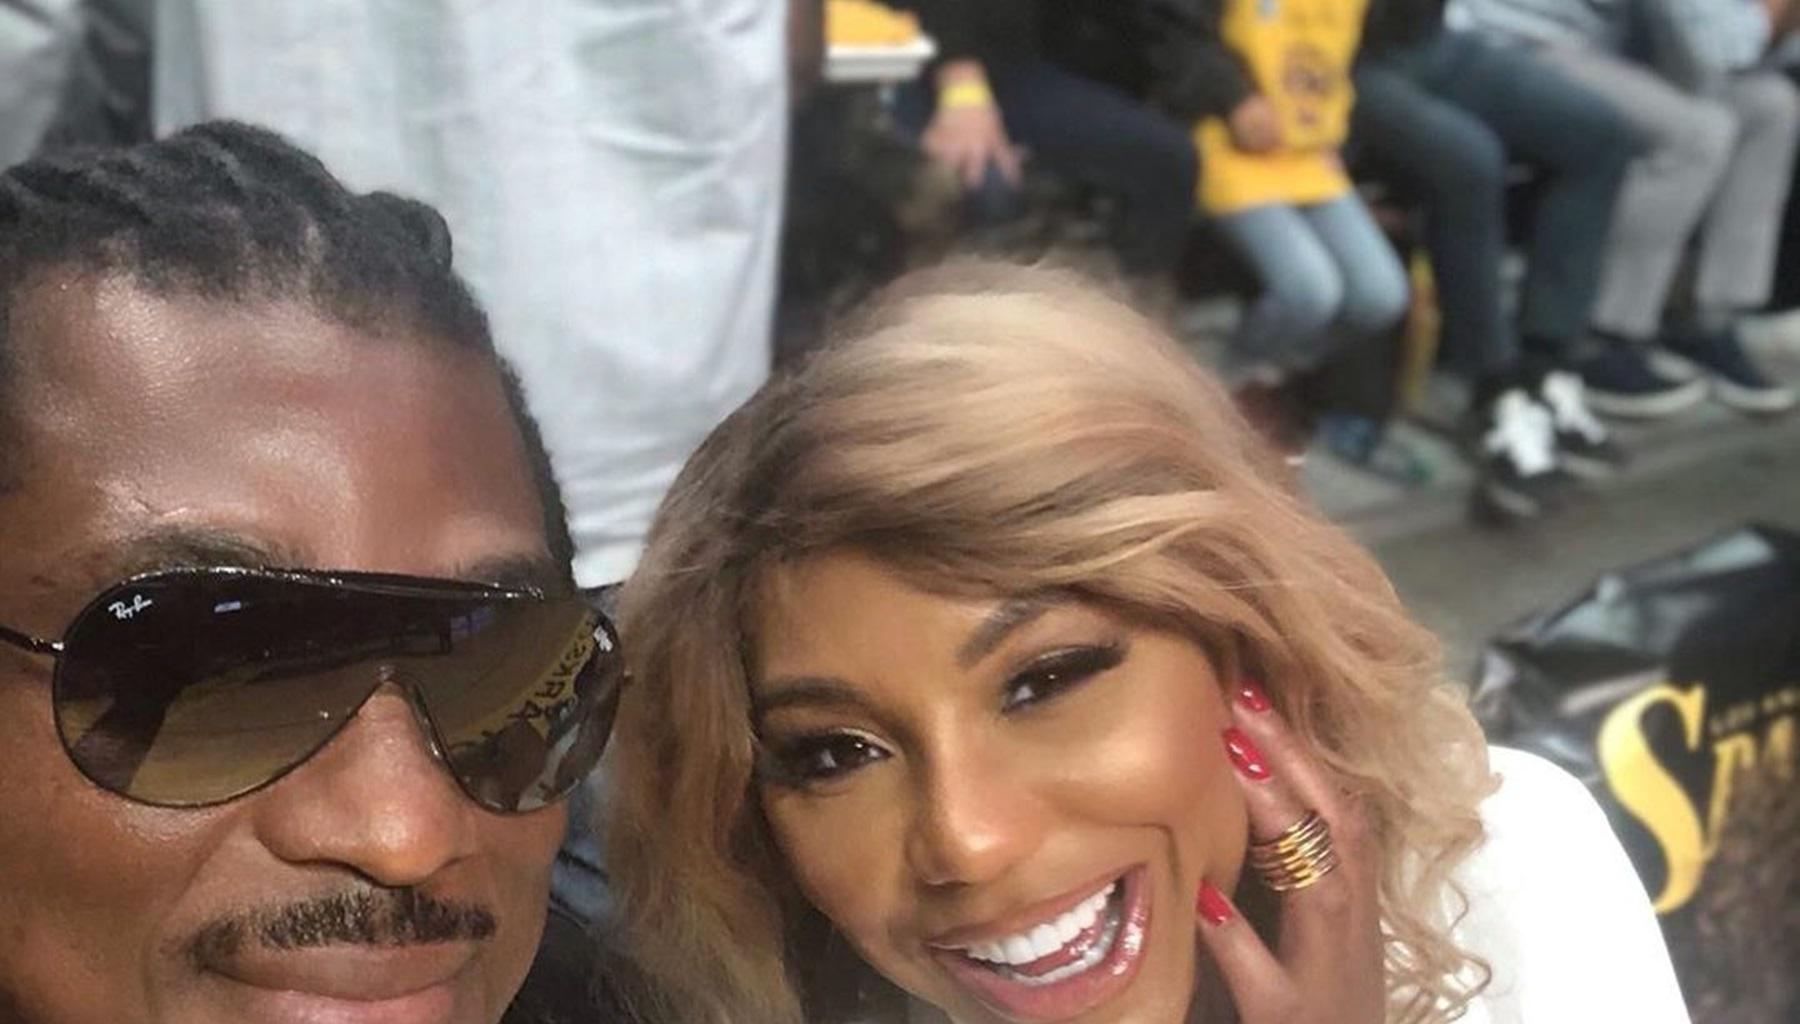 Tamar Braxton Sparks Rumors About Potential Pregnancy With This Video With BF David Adefeso